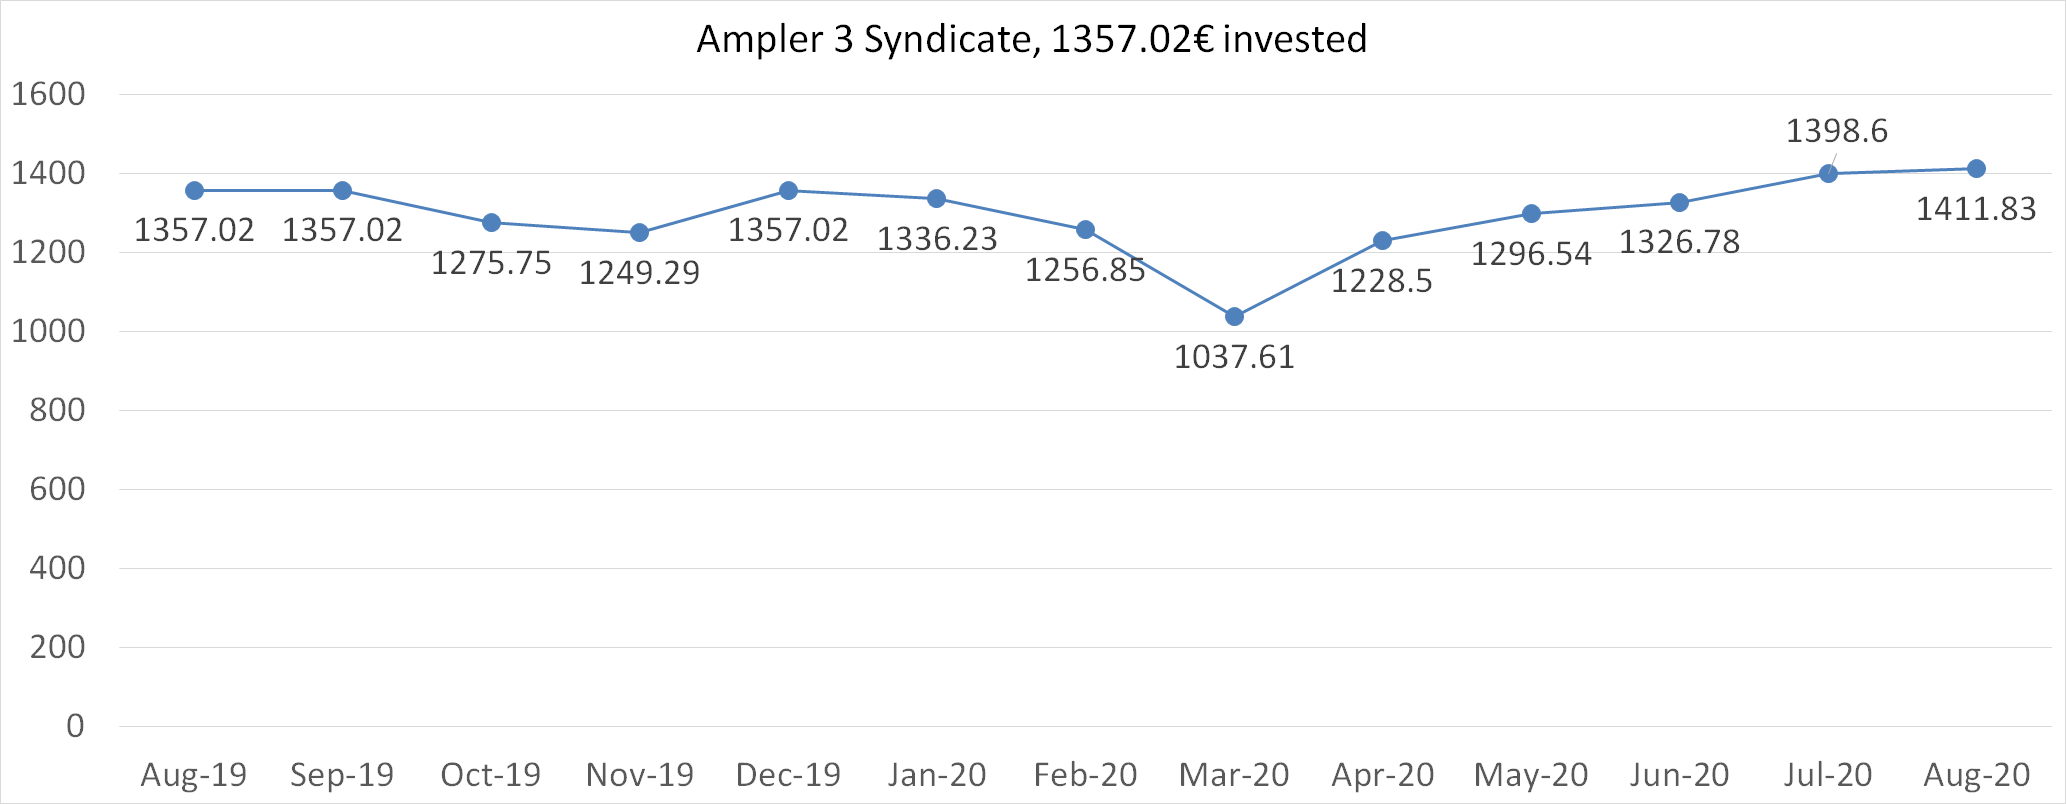 Ampler 3 syndicate worth august 2020